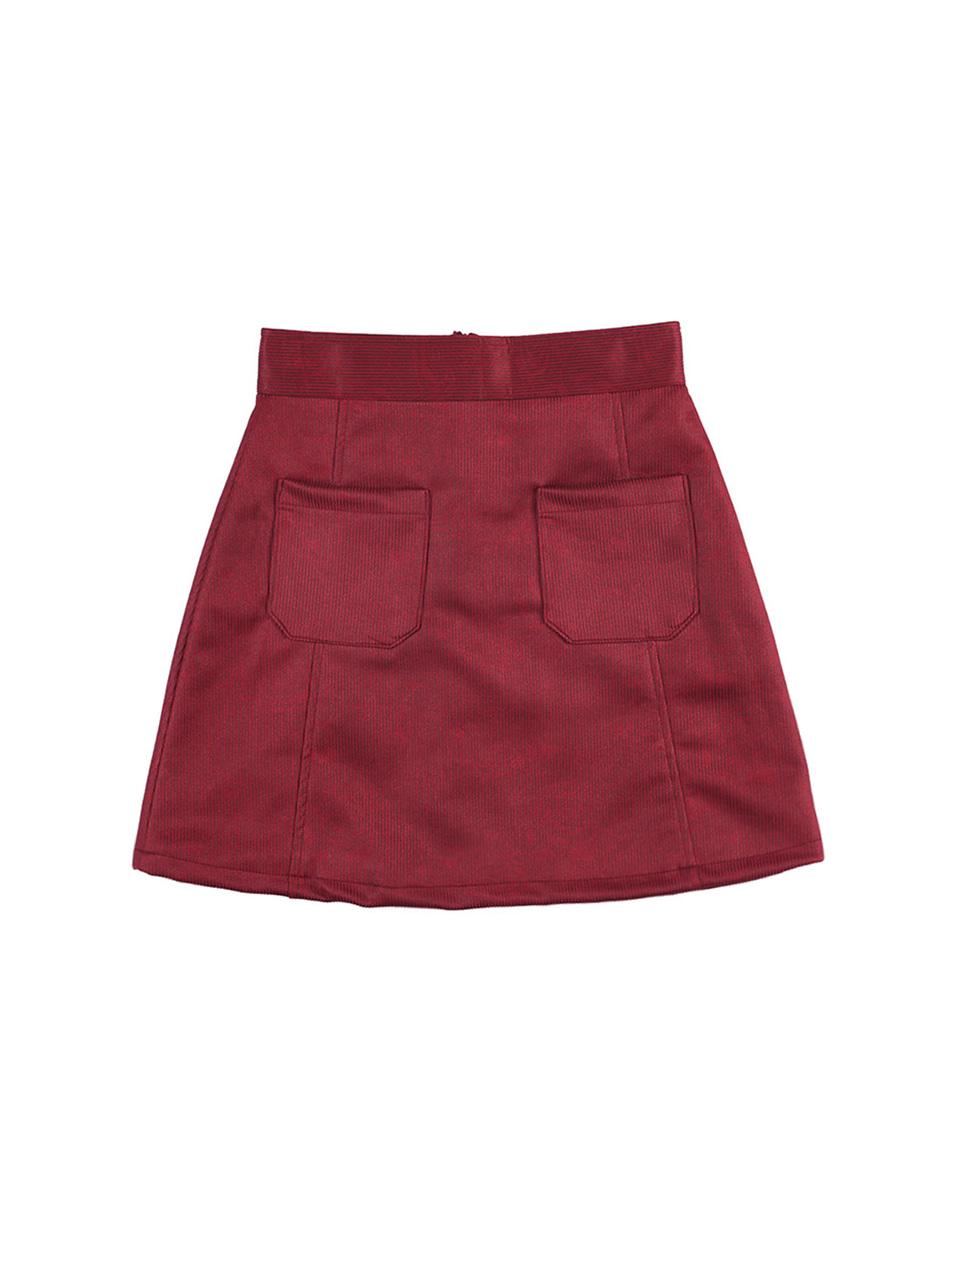 mgmg suede pocket skirt_wine